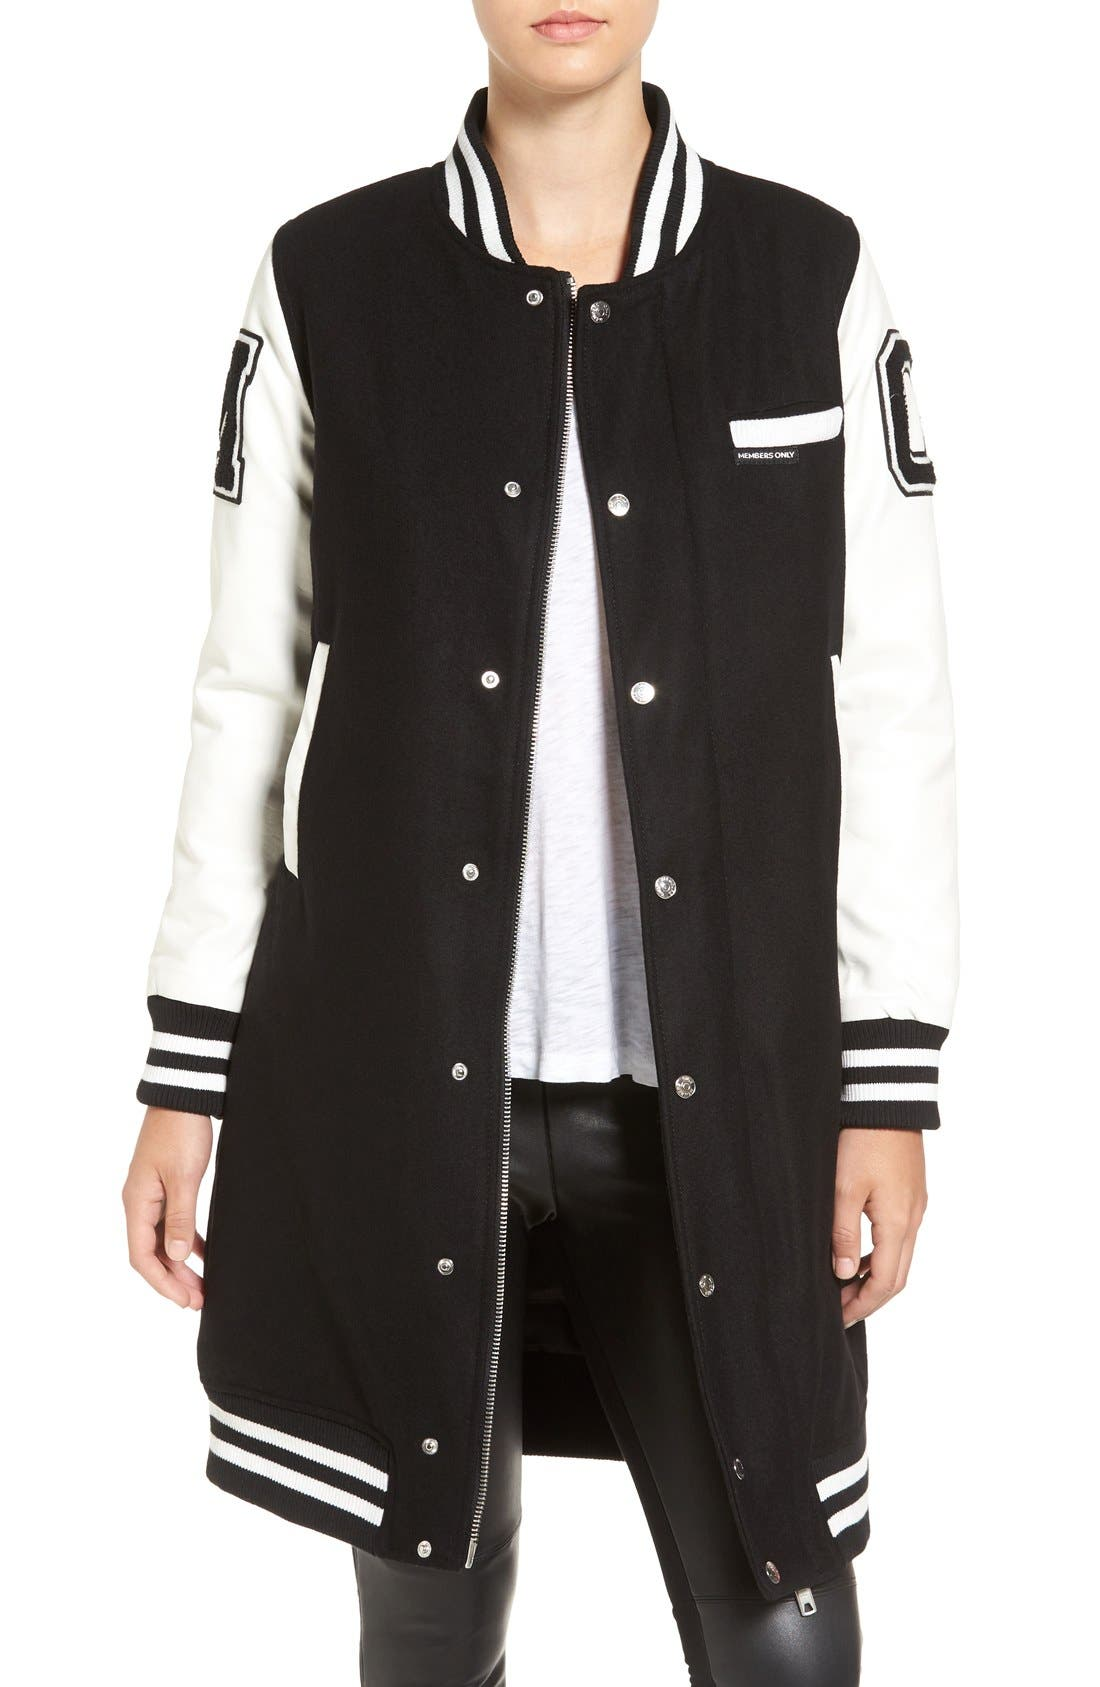 Alternate Image 1 Selected - Members Only Long Varsity Bomber Jacket